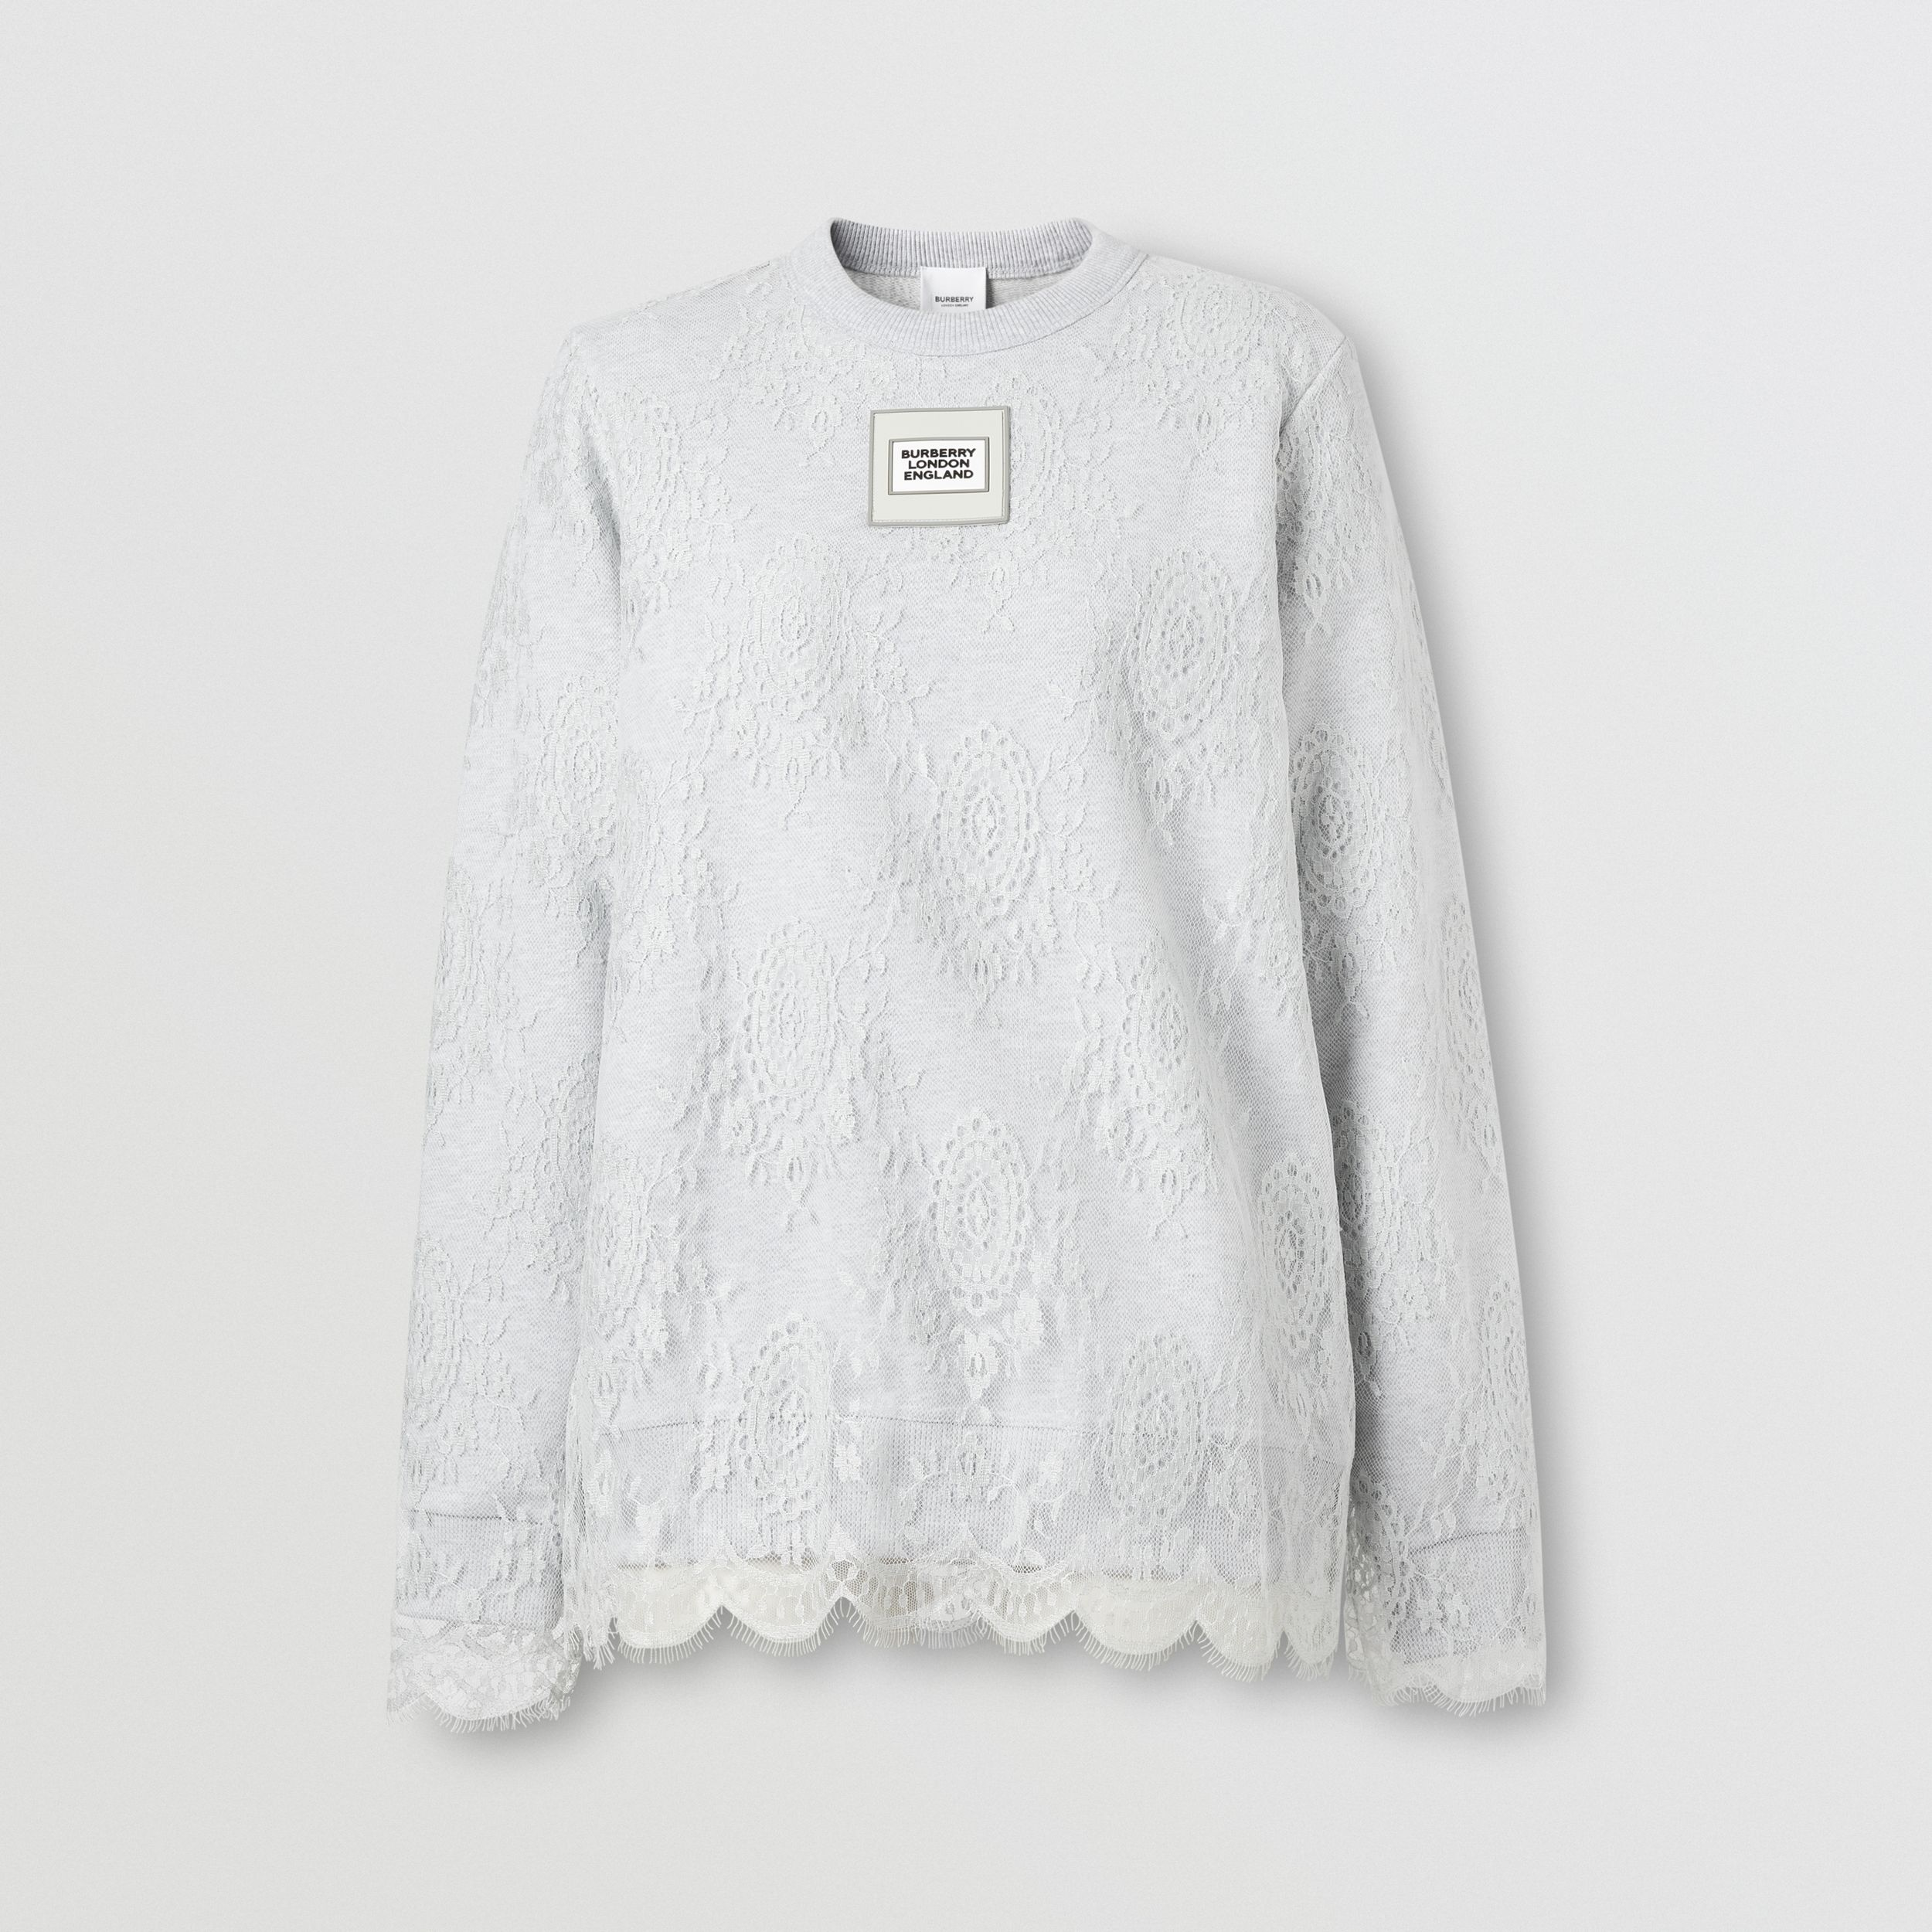 Logo Appliqué Lace Oversized Sweatshirt in Light Pebble Grey - Women | Burberry Australia - 4